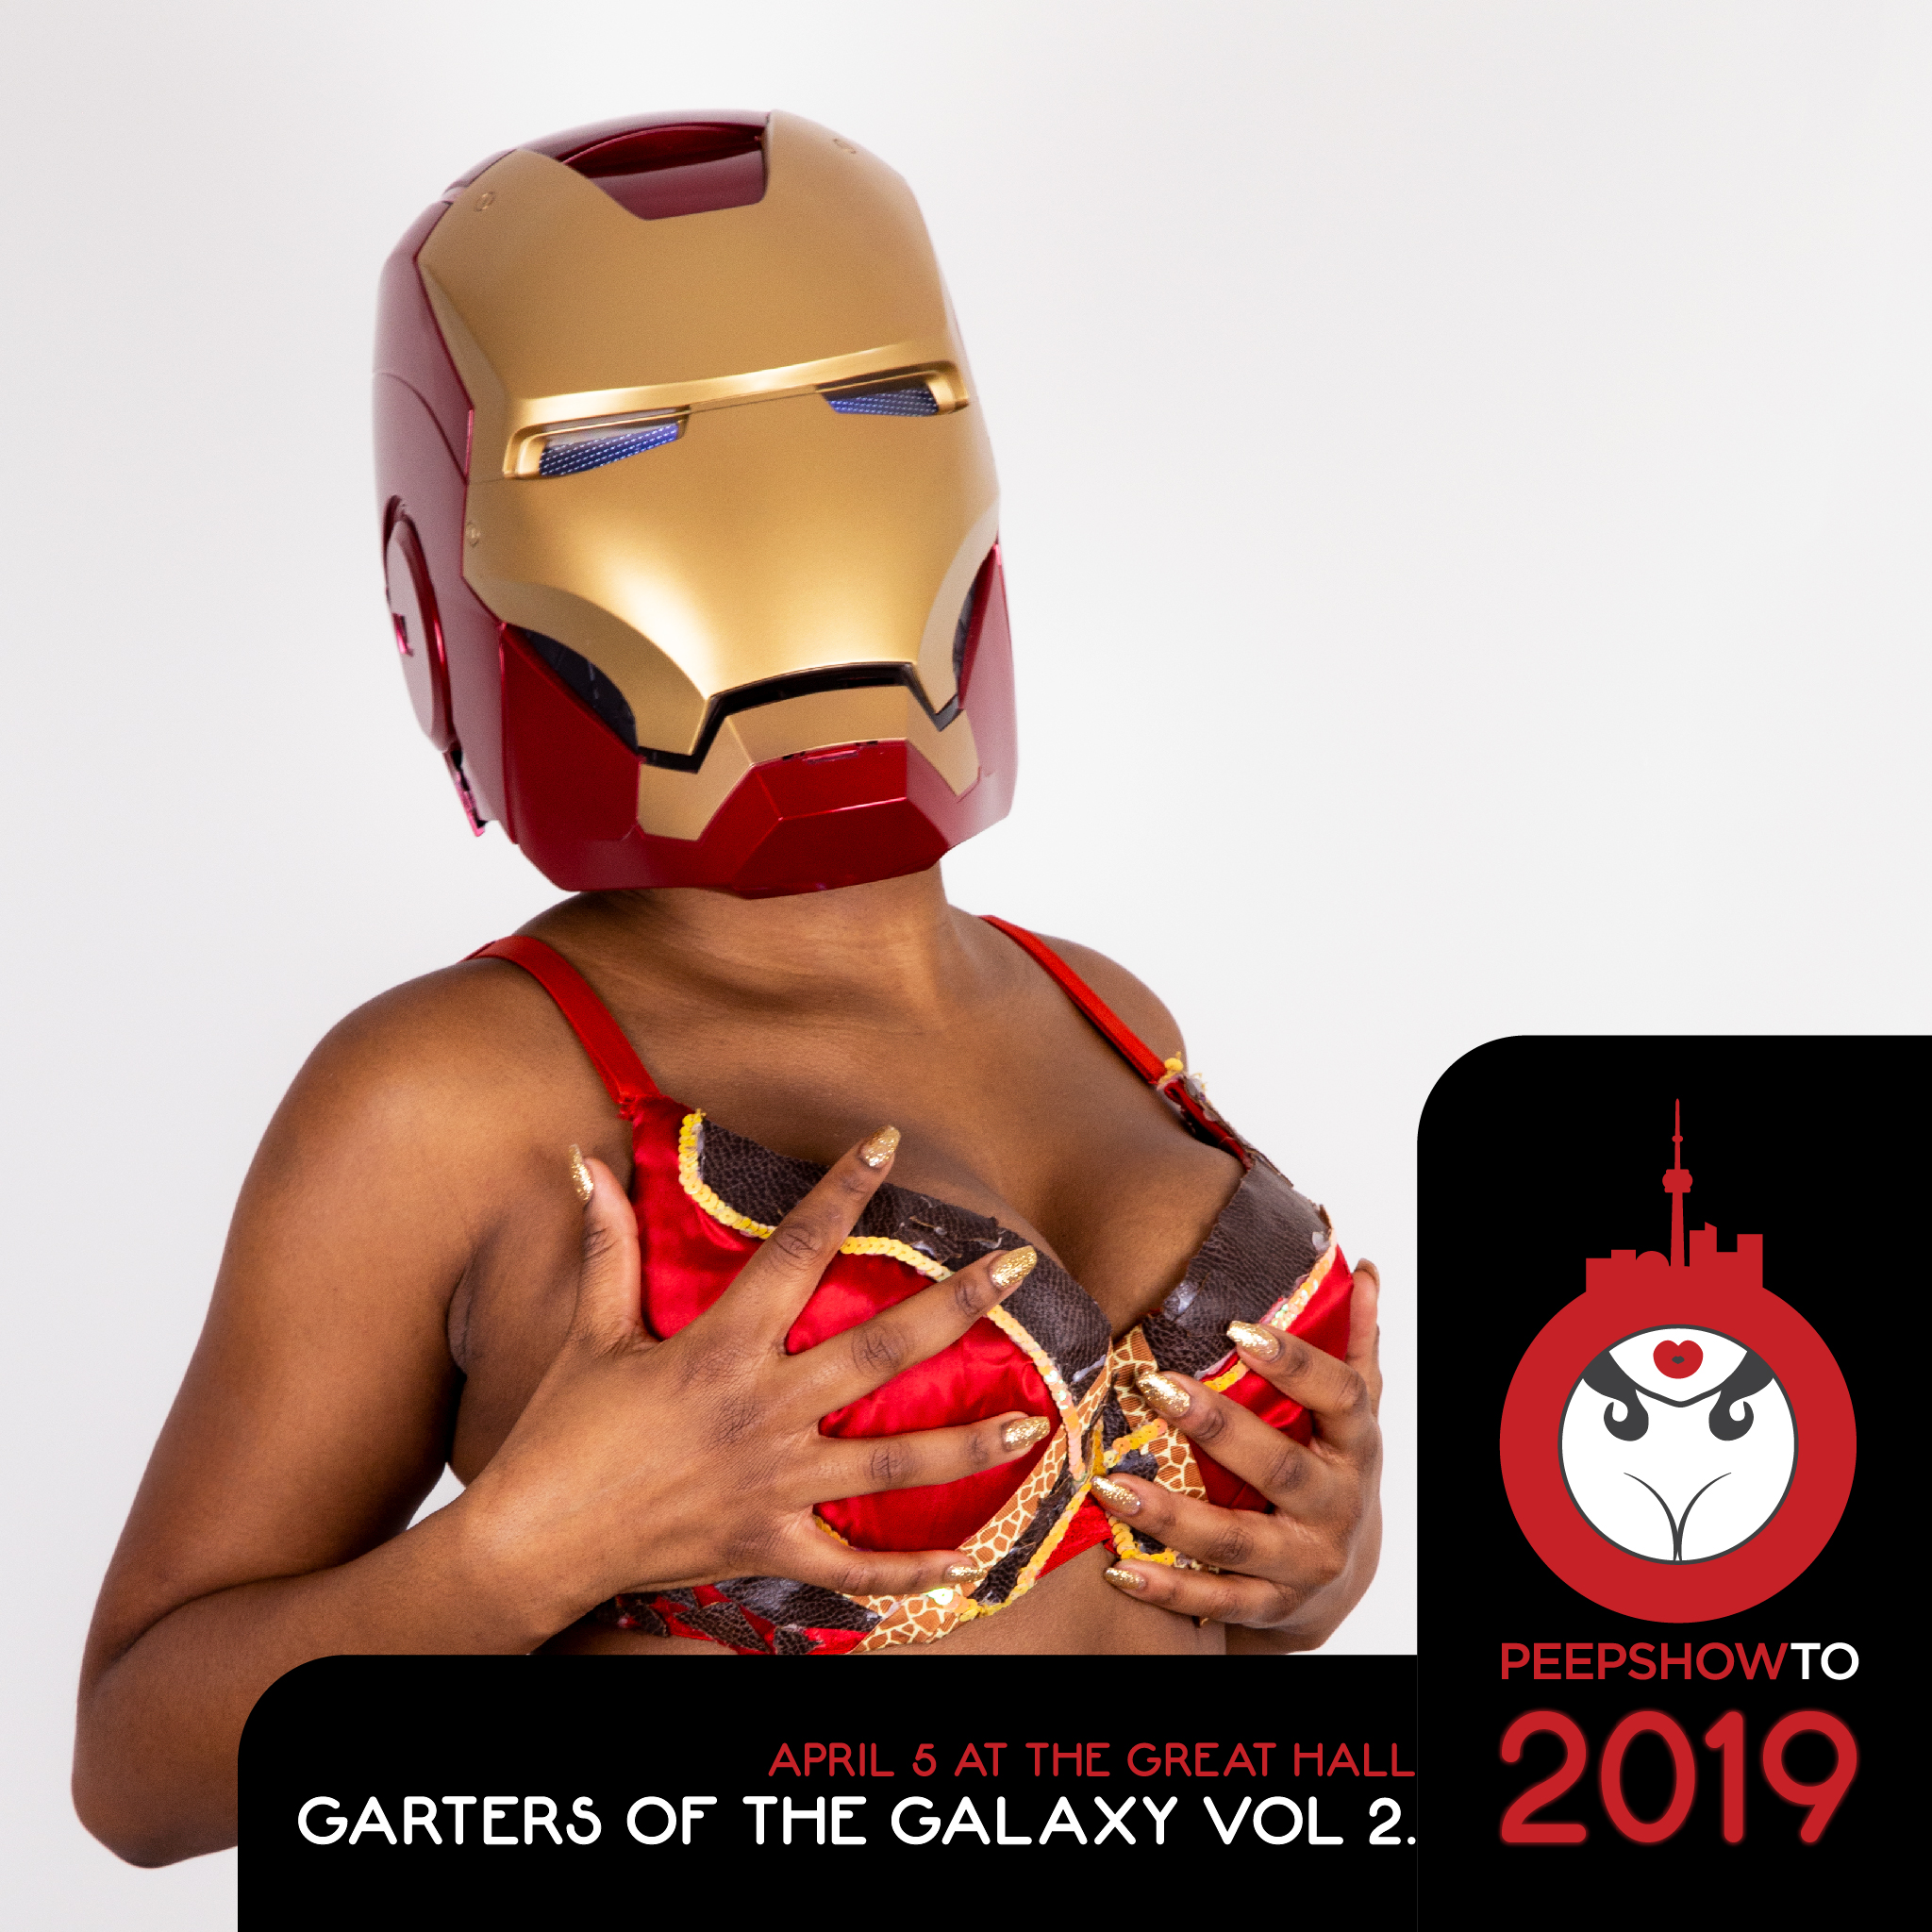 Garters of the Galaxy Vol 2: Now Accepting Pitches!